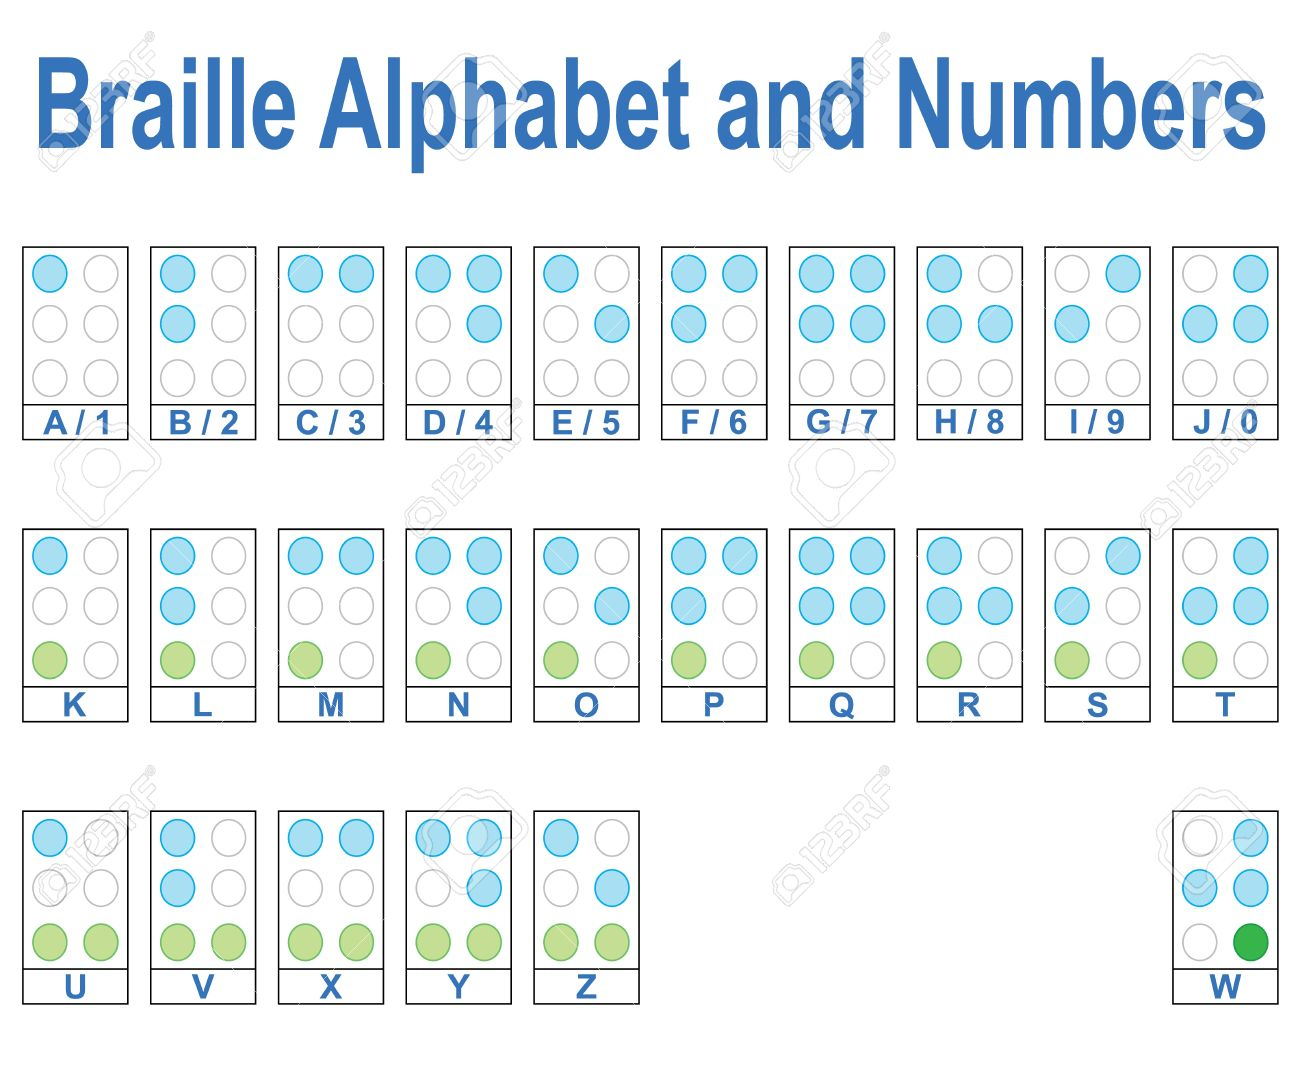 Braille Alphabet and Numbers Stock Vector - 21465510